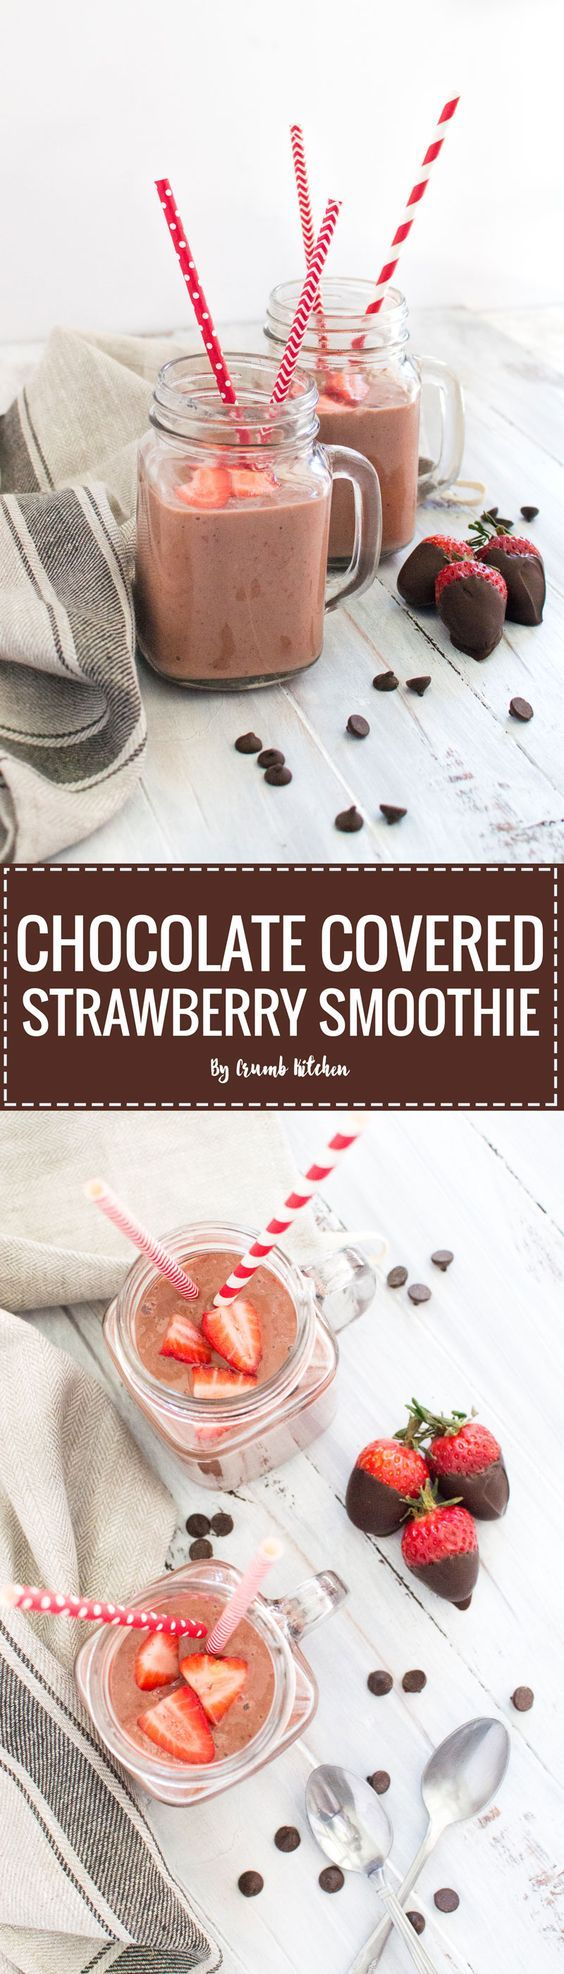 Frozen strawberries and bananas blended up with a kick of pure cocoa powder creates this healthy Chocolate-Covered Strawberry Smoothie.   crumbkitchen.com. Delicious kids smoothie!